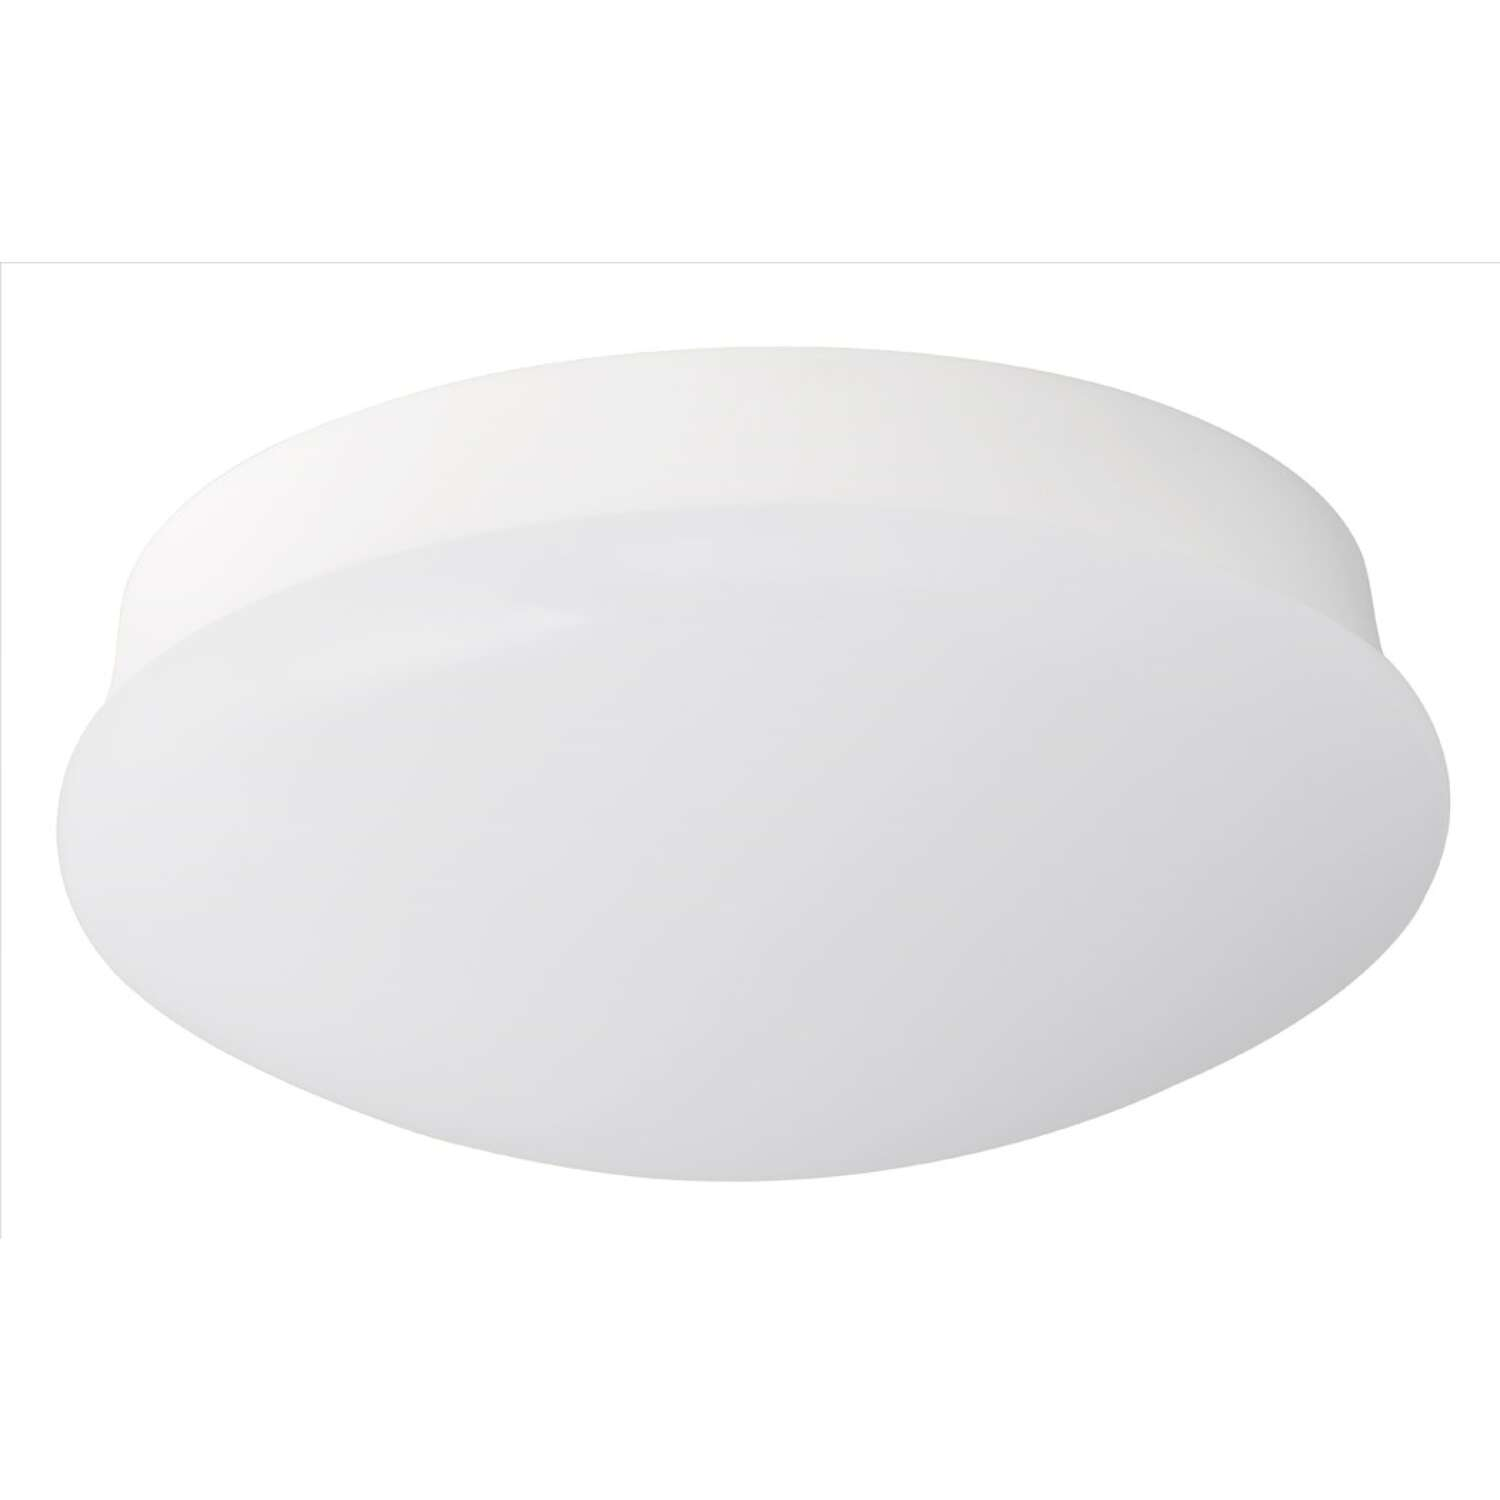 ETI Spin Light 4.2 in. H x 11 in. W x 11 in. L White LED Ceiling Spin Light